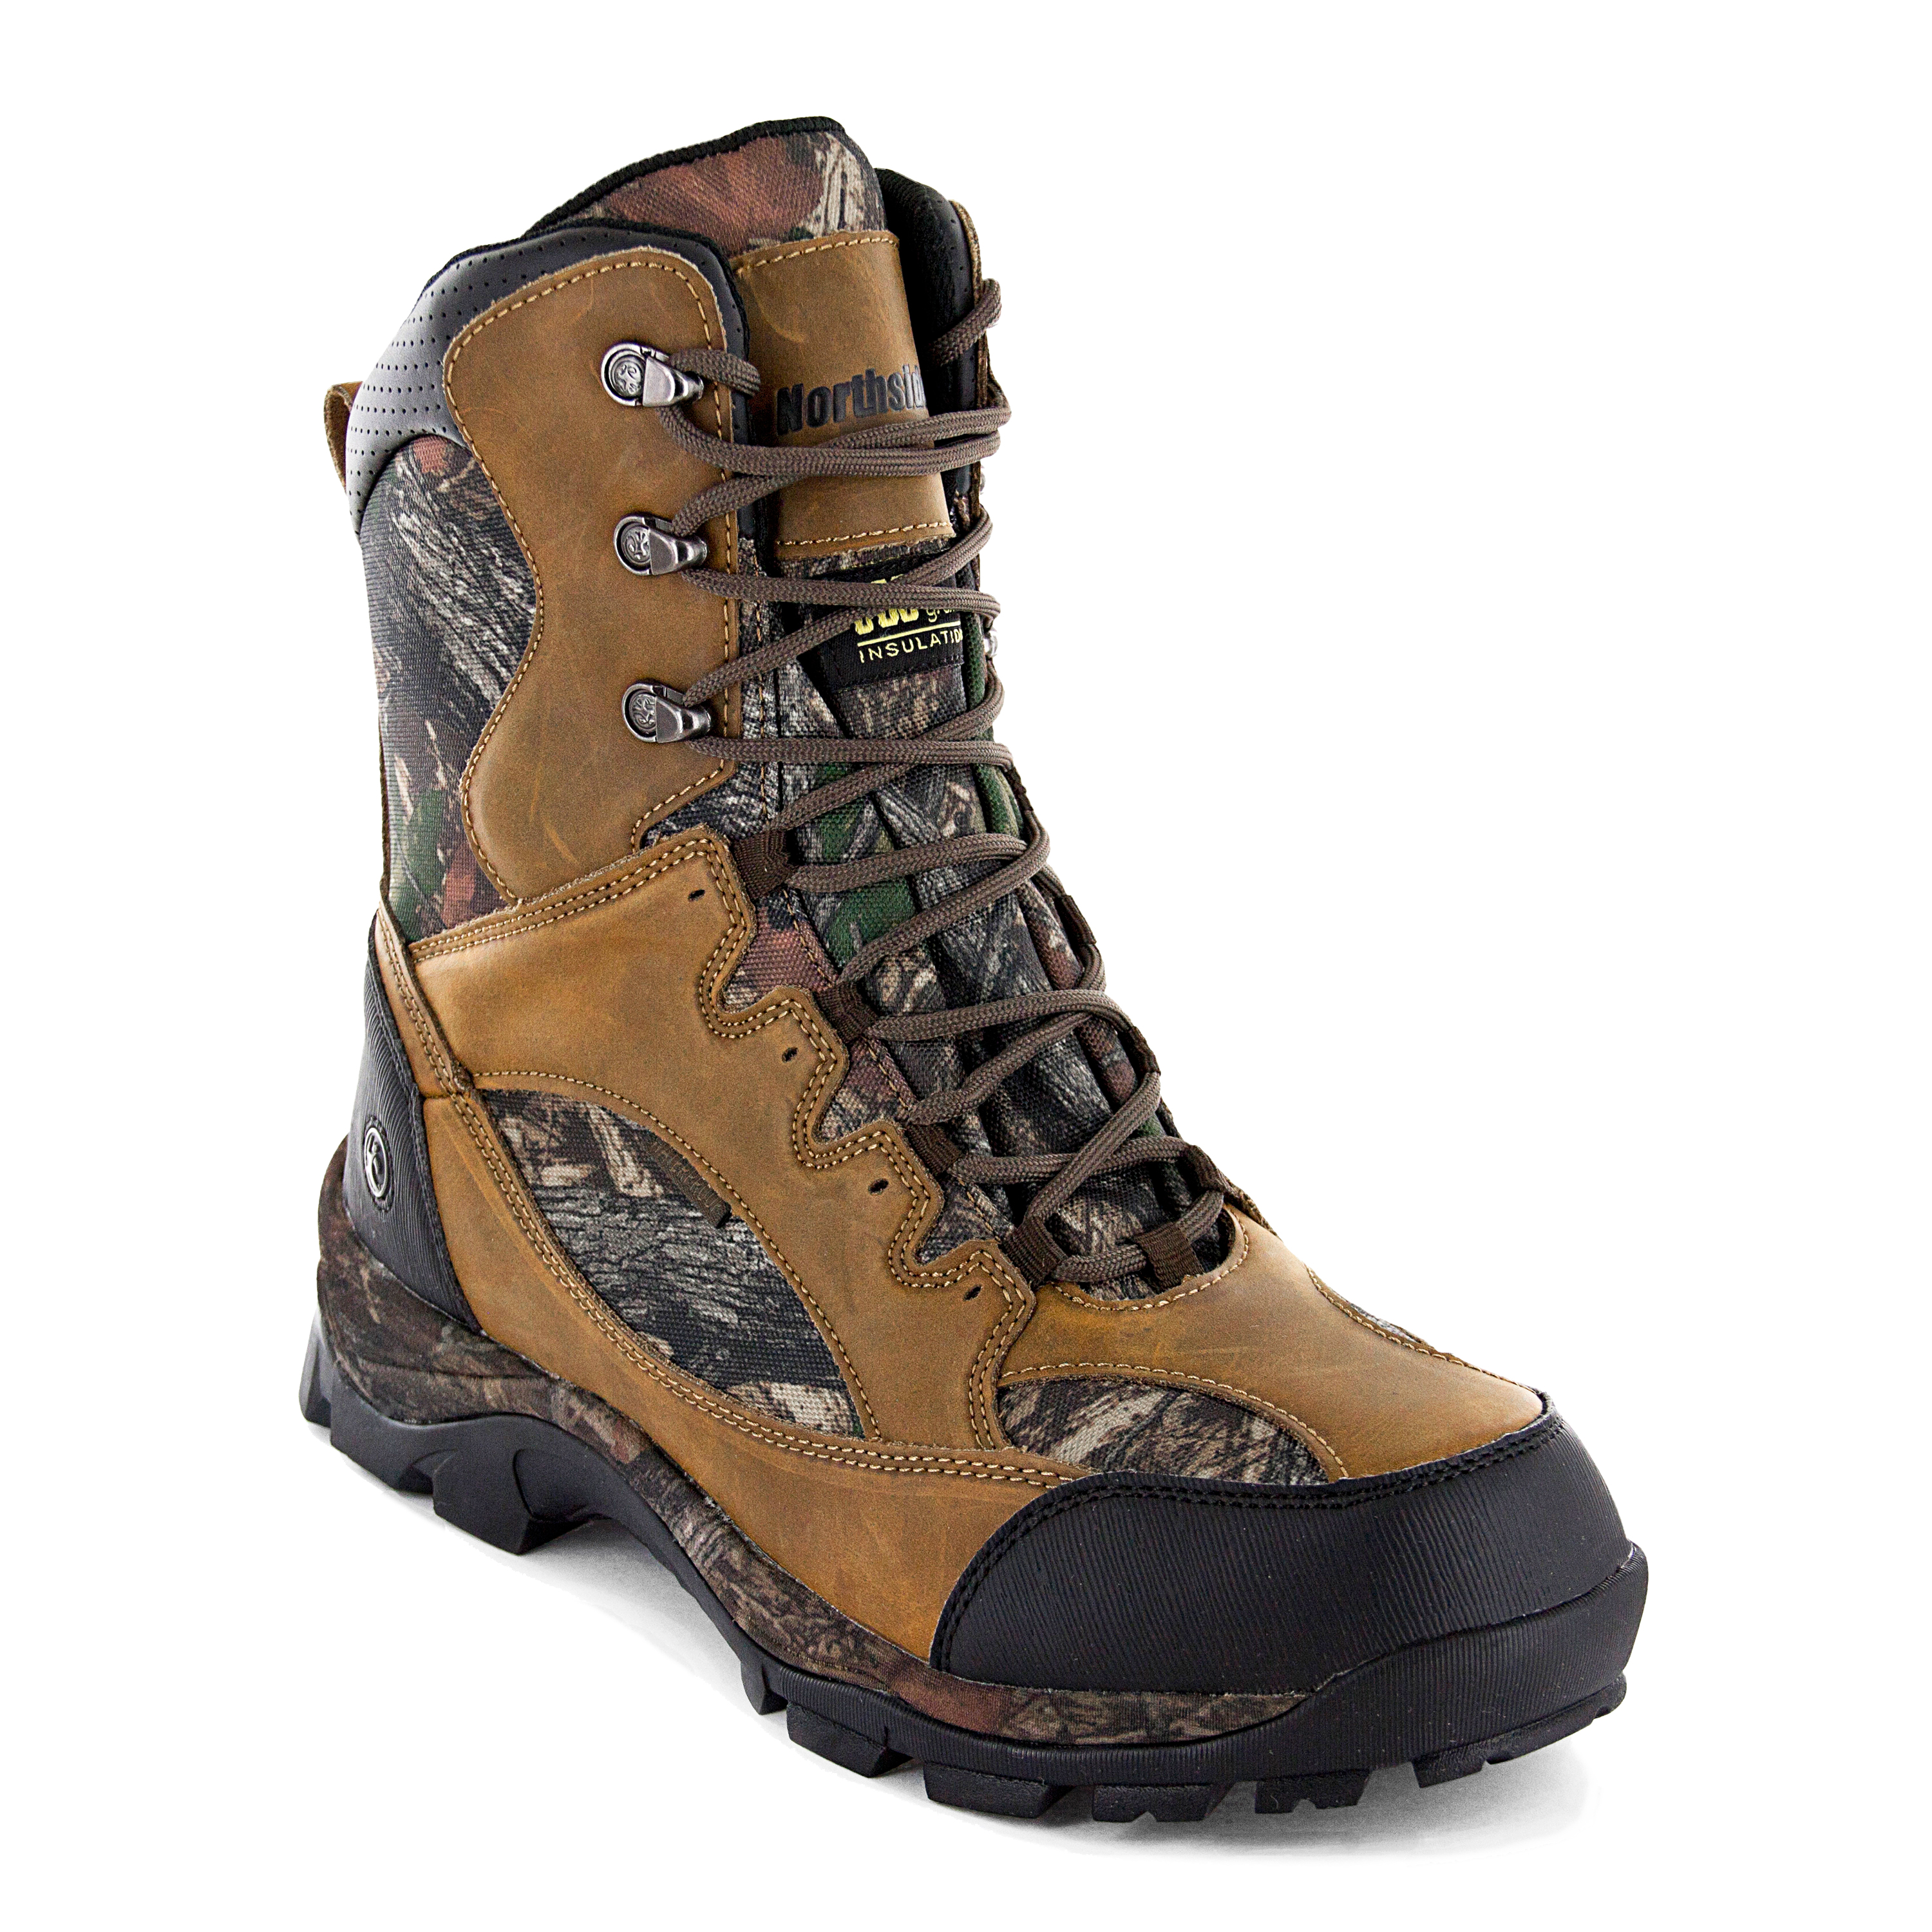 Northside Mens Renegade Waterproof 800 Gram Ultra Insulated Leather Hunting Boot Camo